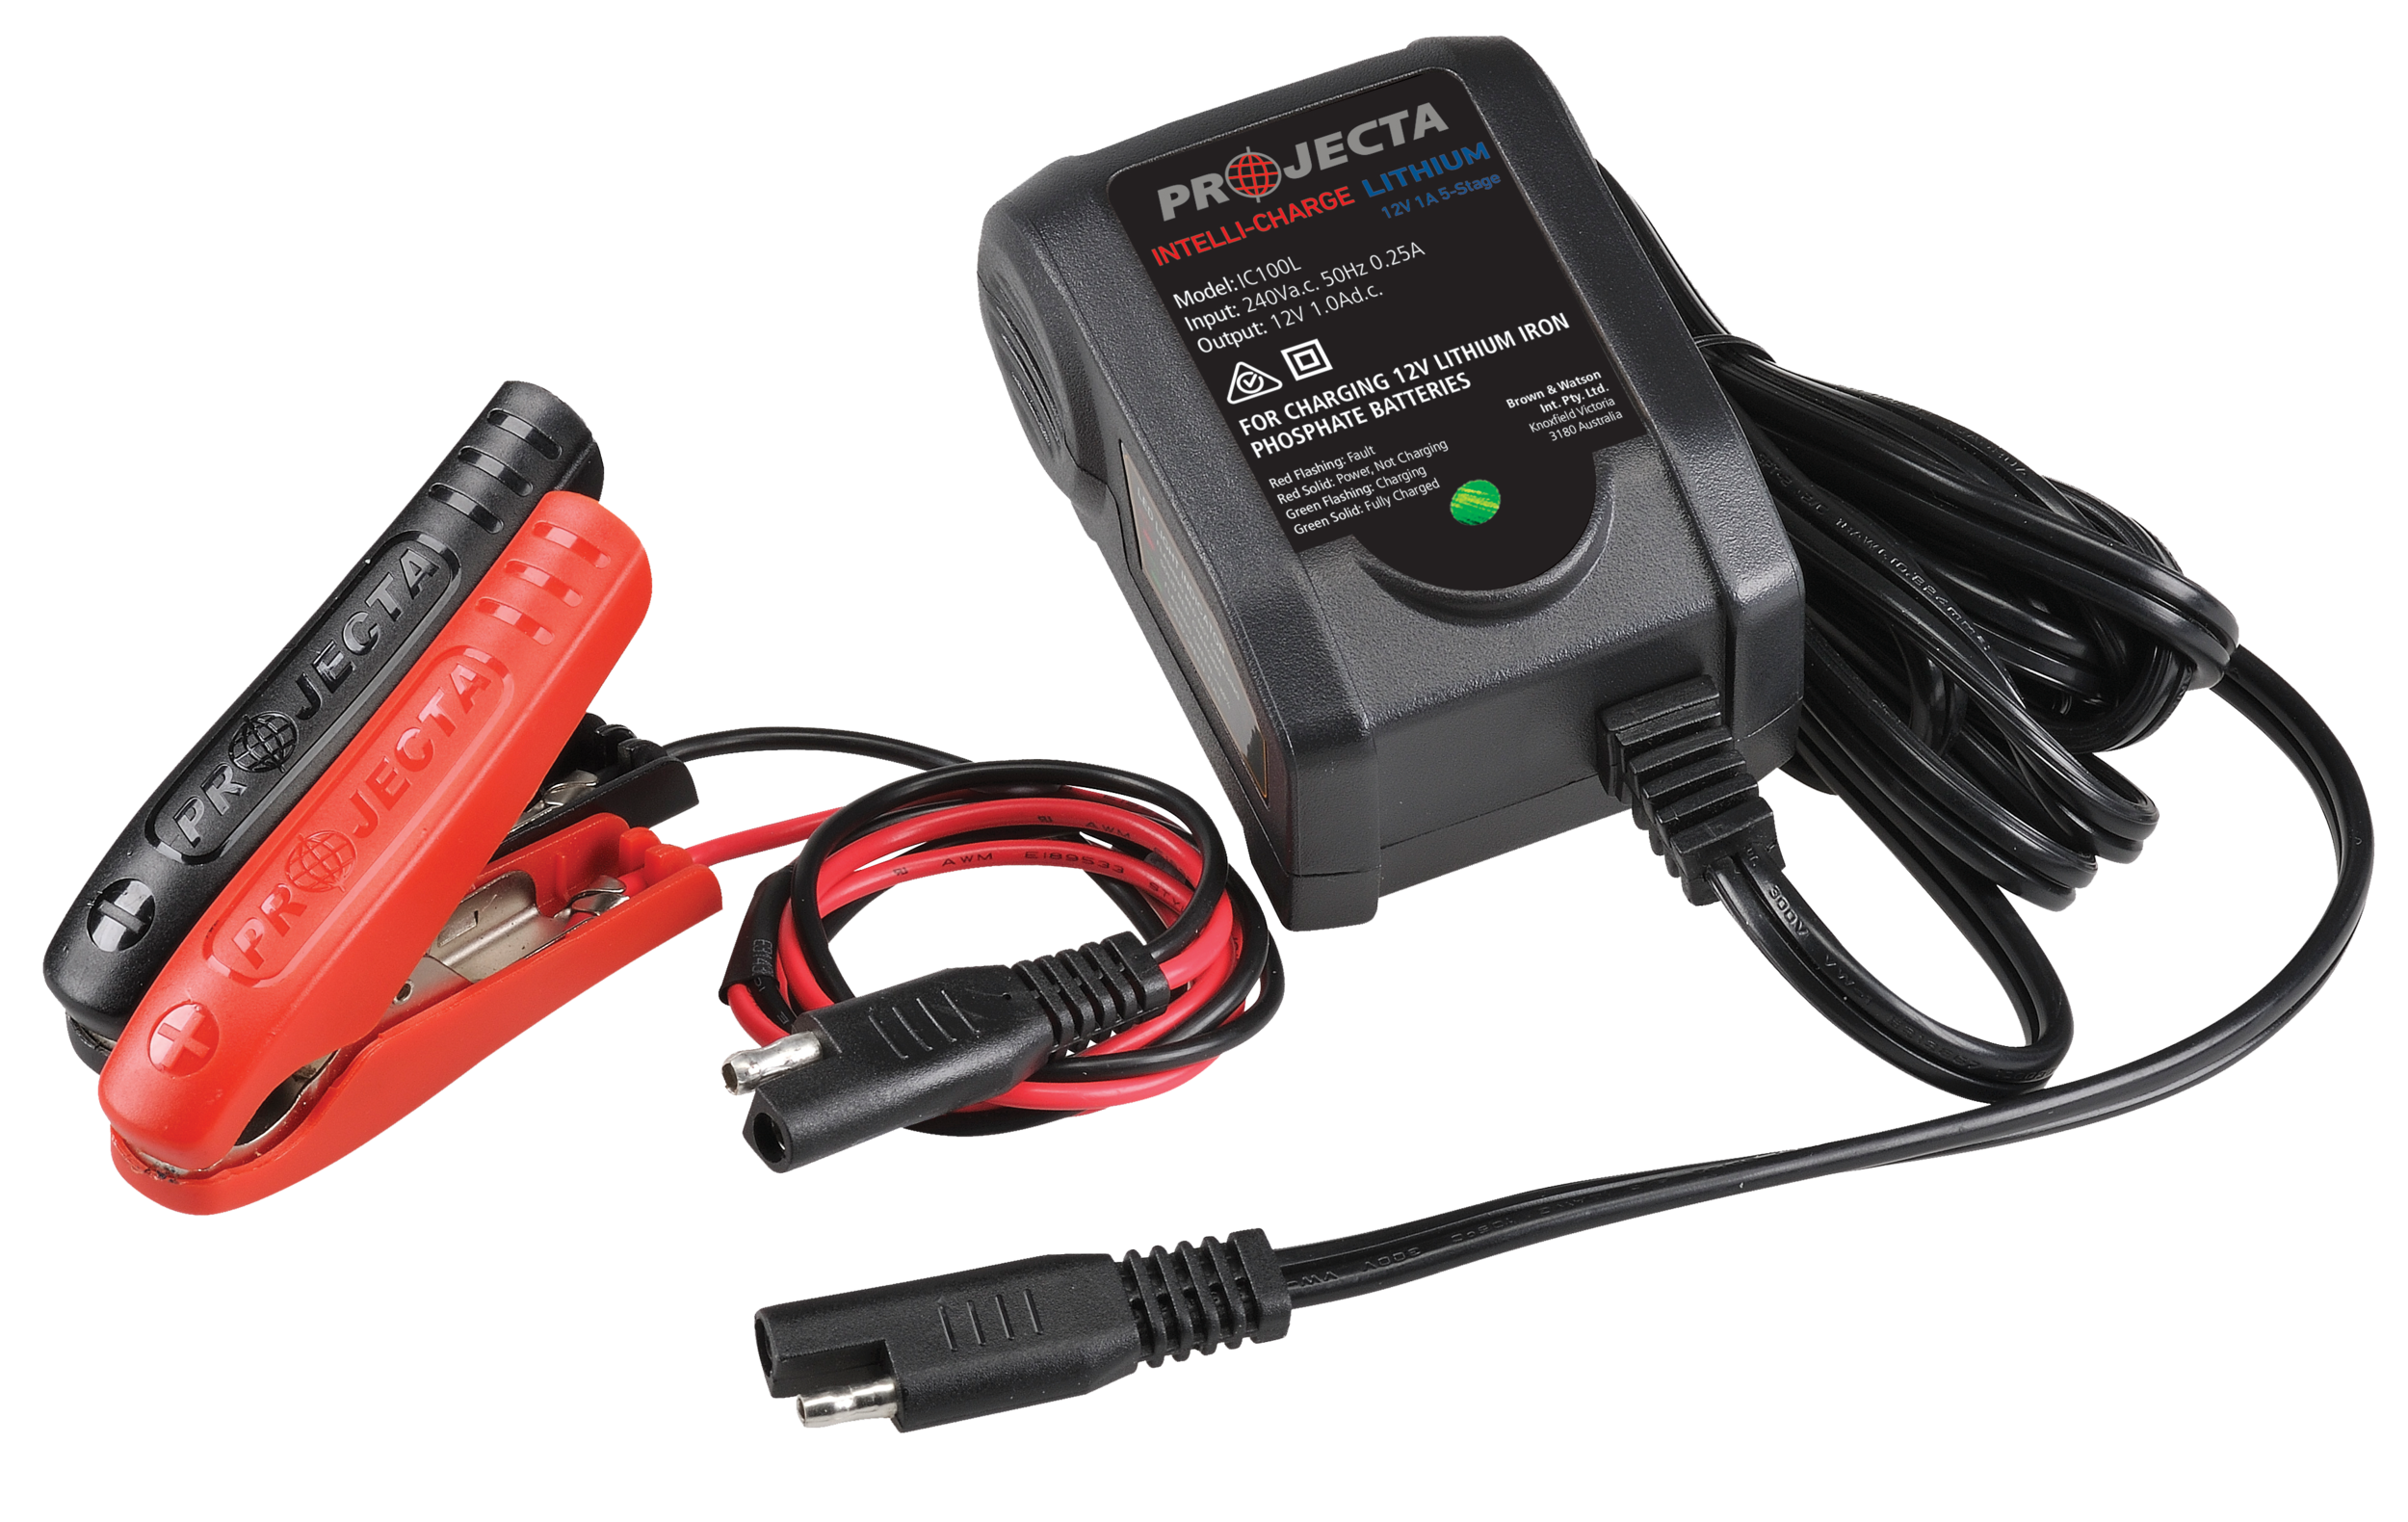 Projecta-Intelli-Charge--IC100L-Lithium-Battery-Charger-Transparent.png